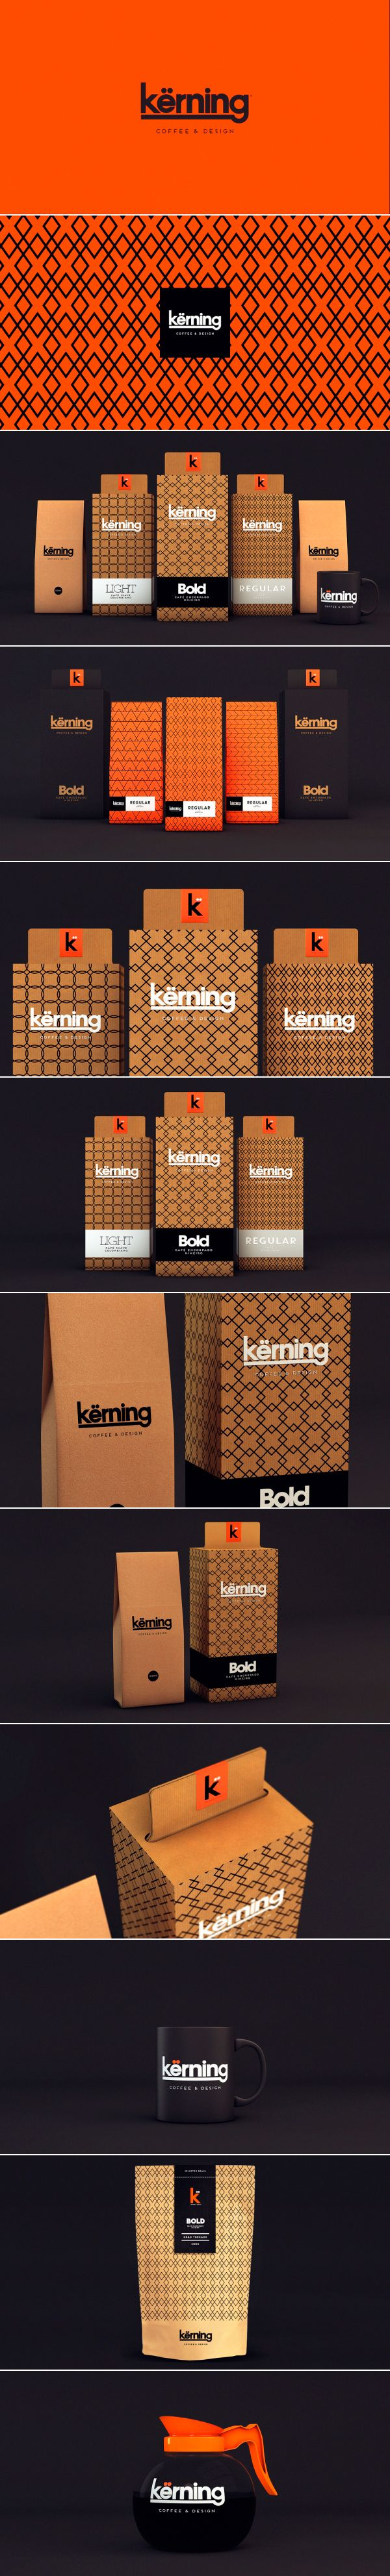 Kërning Coffee by Sweety Branding Studio. wow that's bright packaging PD